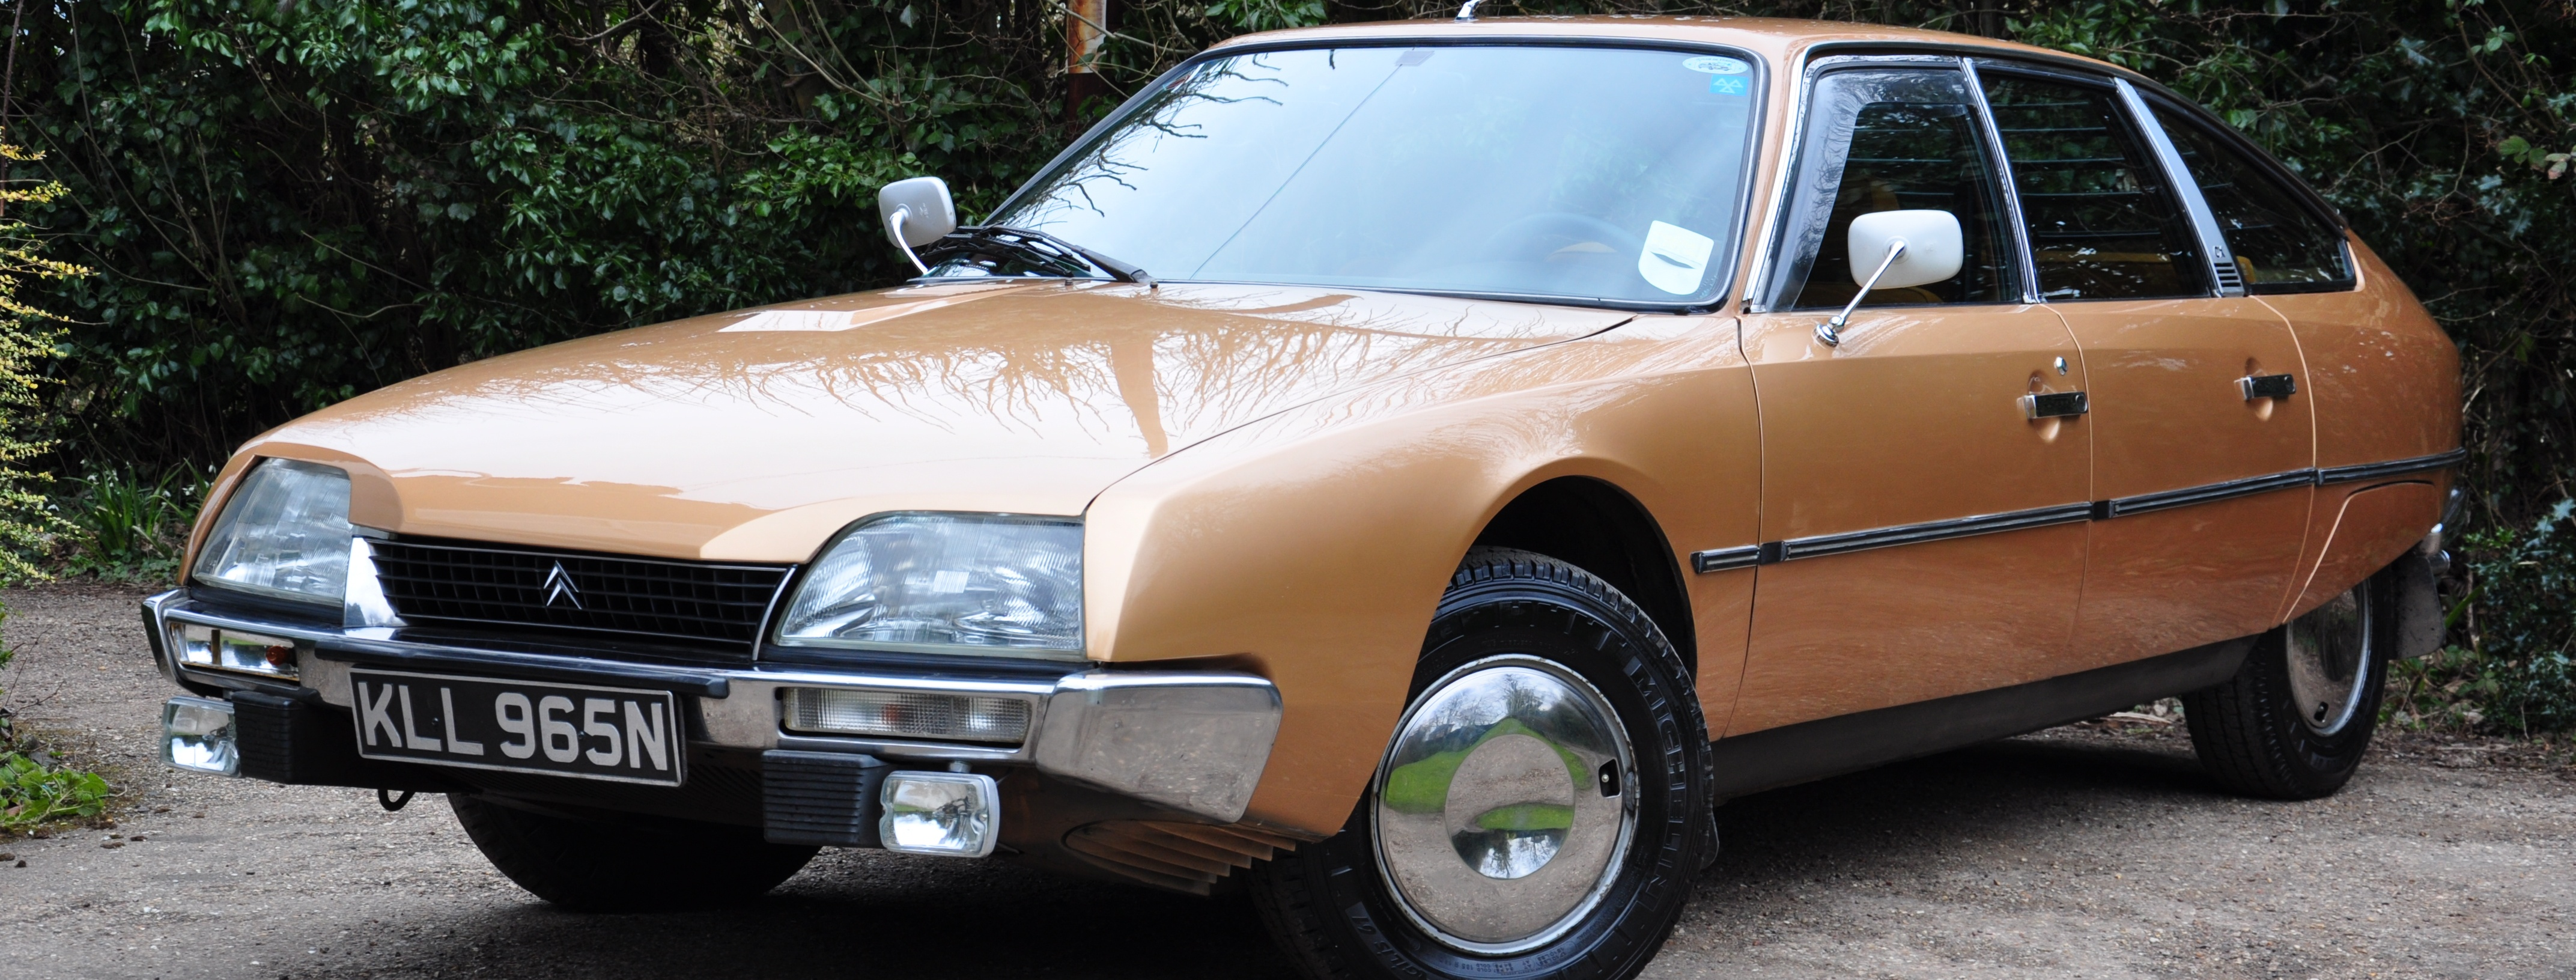 Citroen CX Header 1